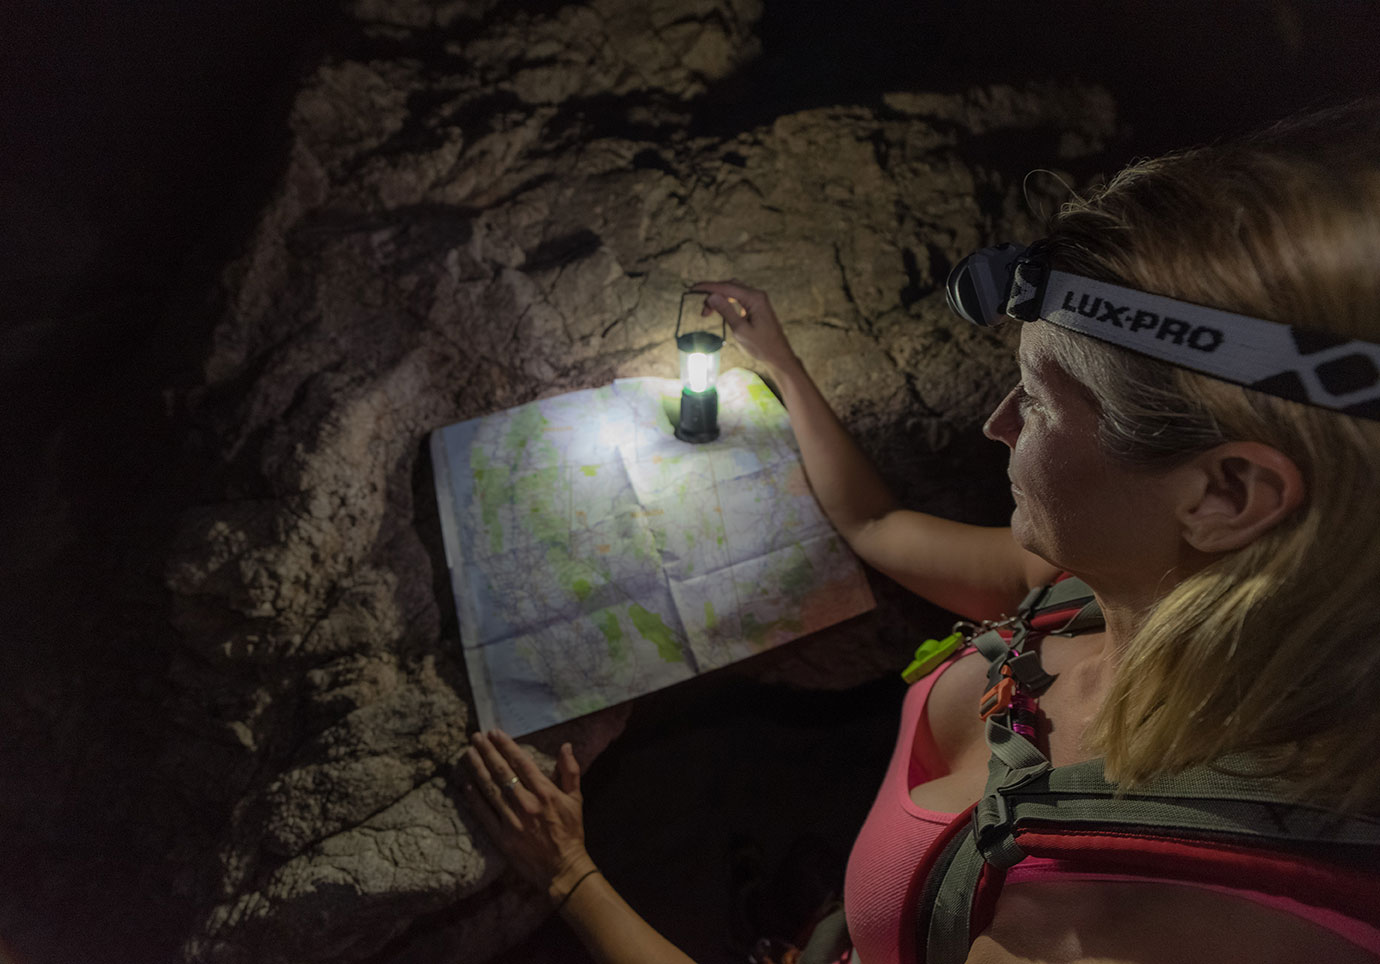 Lux Pro Flashlights Adventure in the Canyons. Daniel Britton Adventure Photography